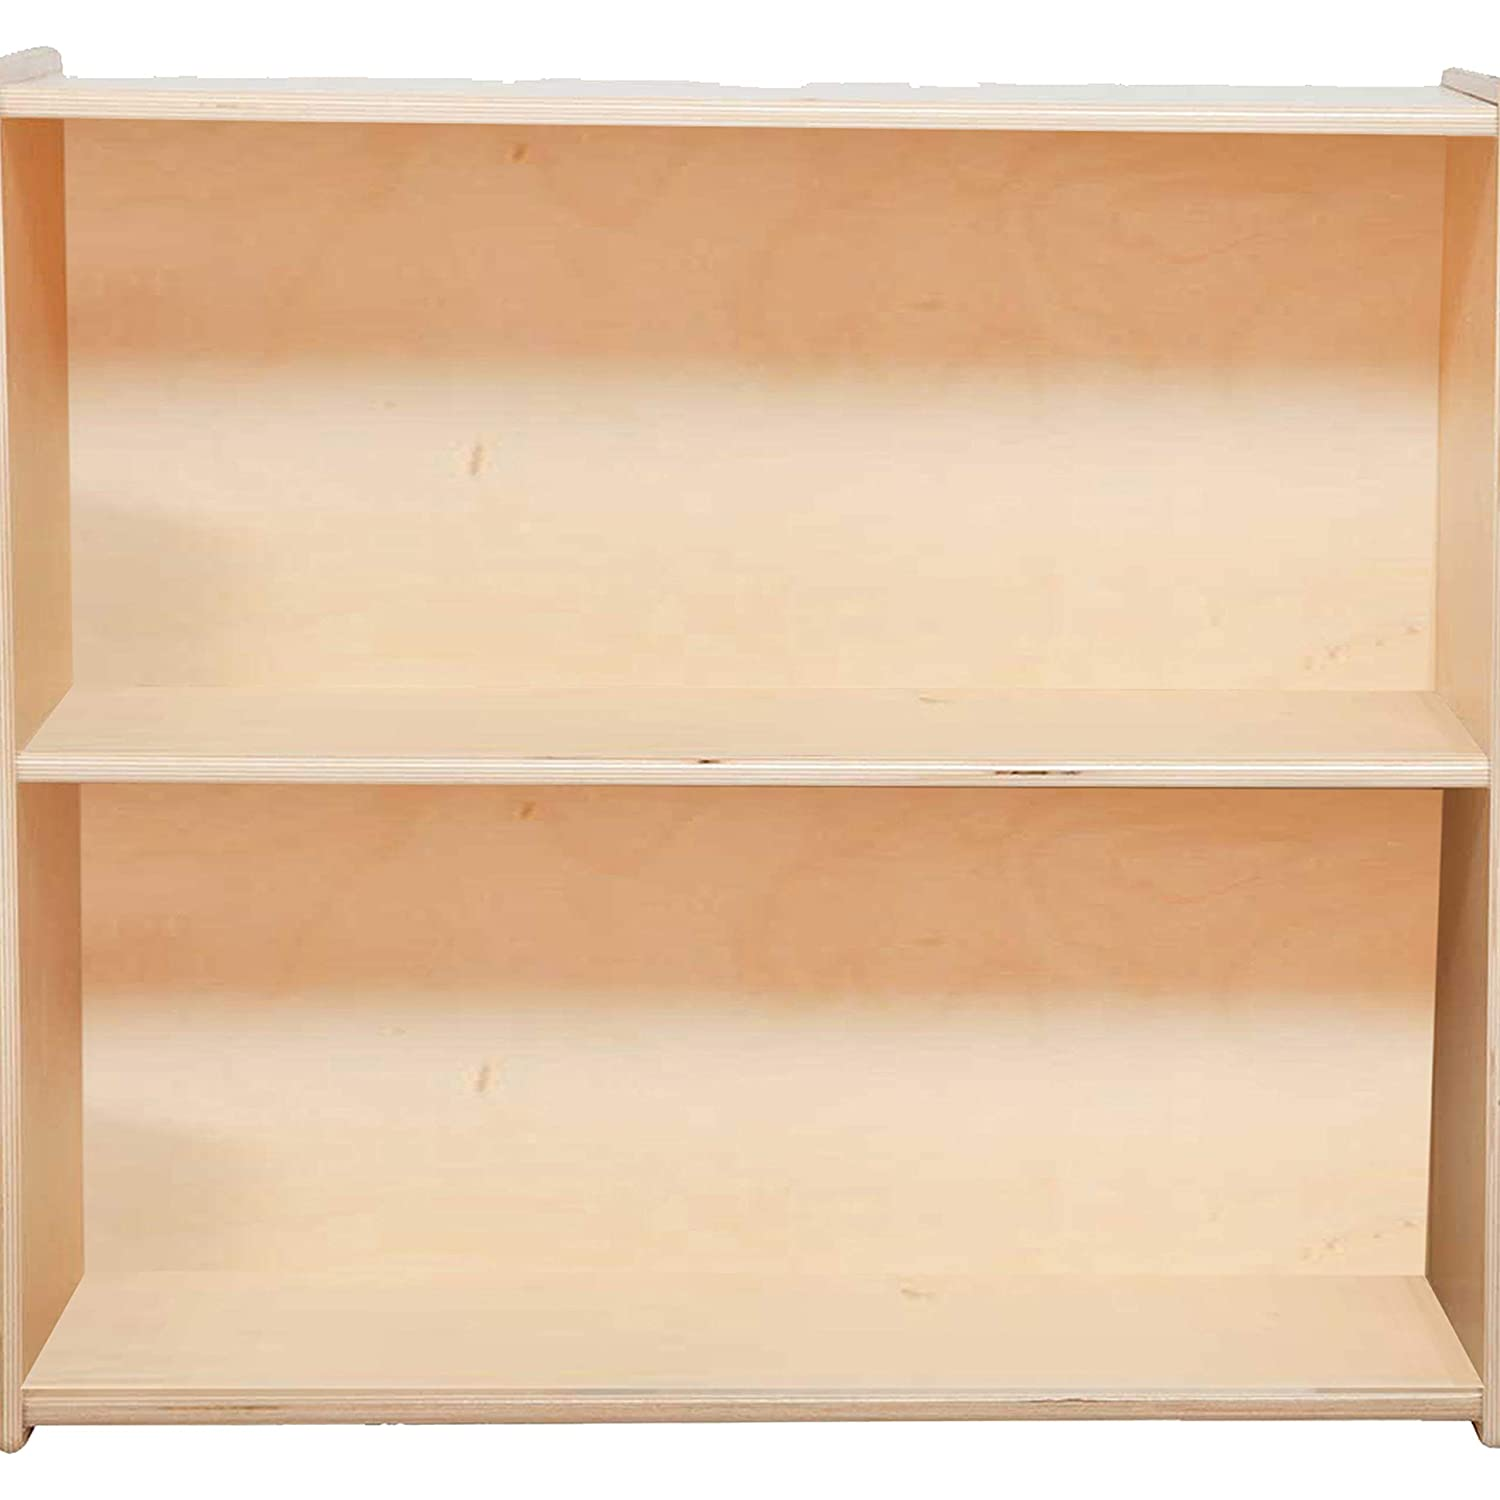 Image of Contender Bookshelf, 27-1/4'H - Assembled Book Display & Storage